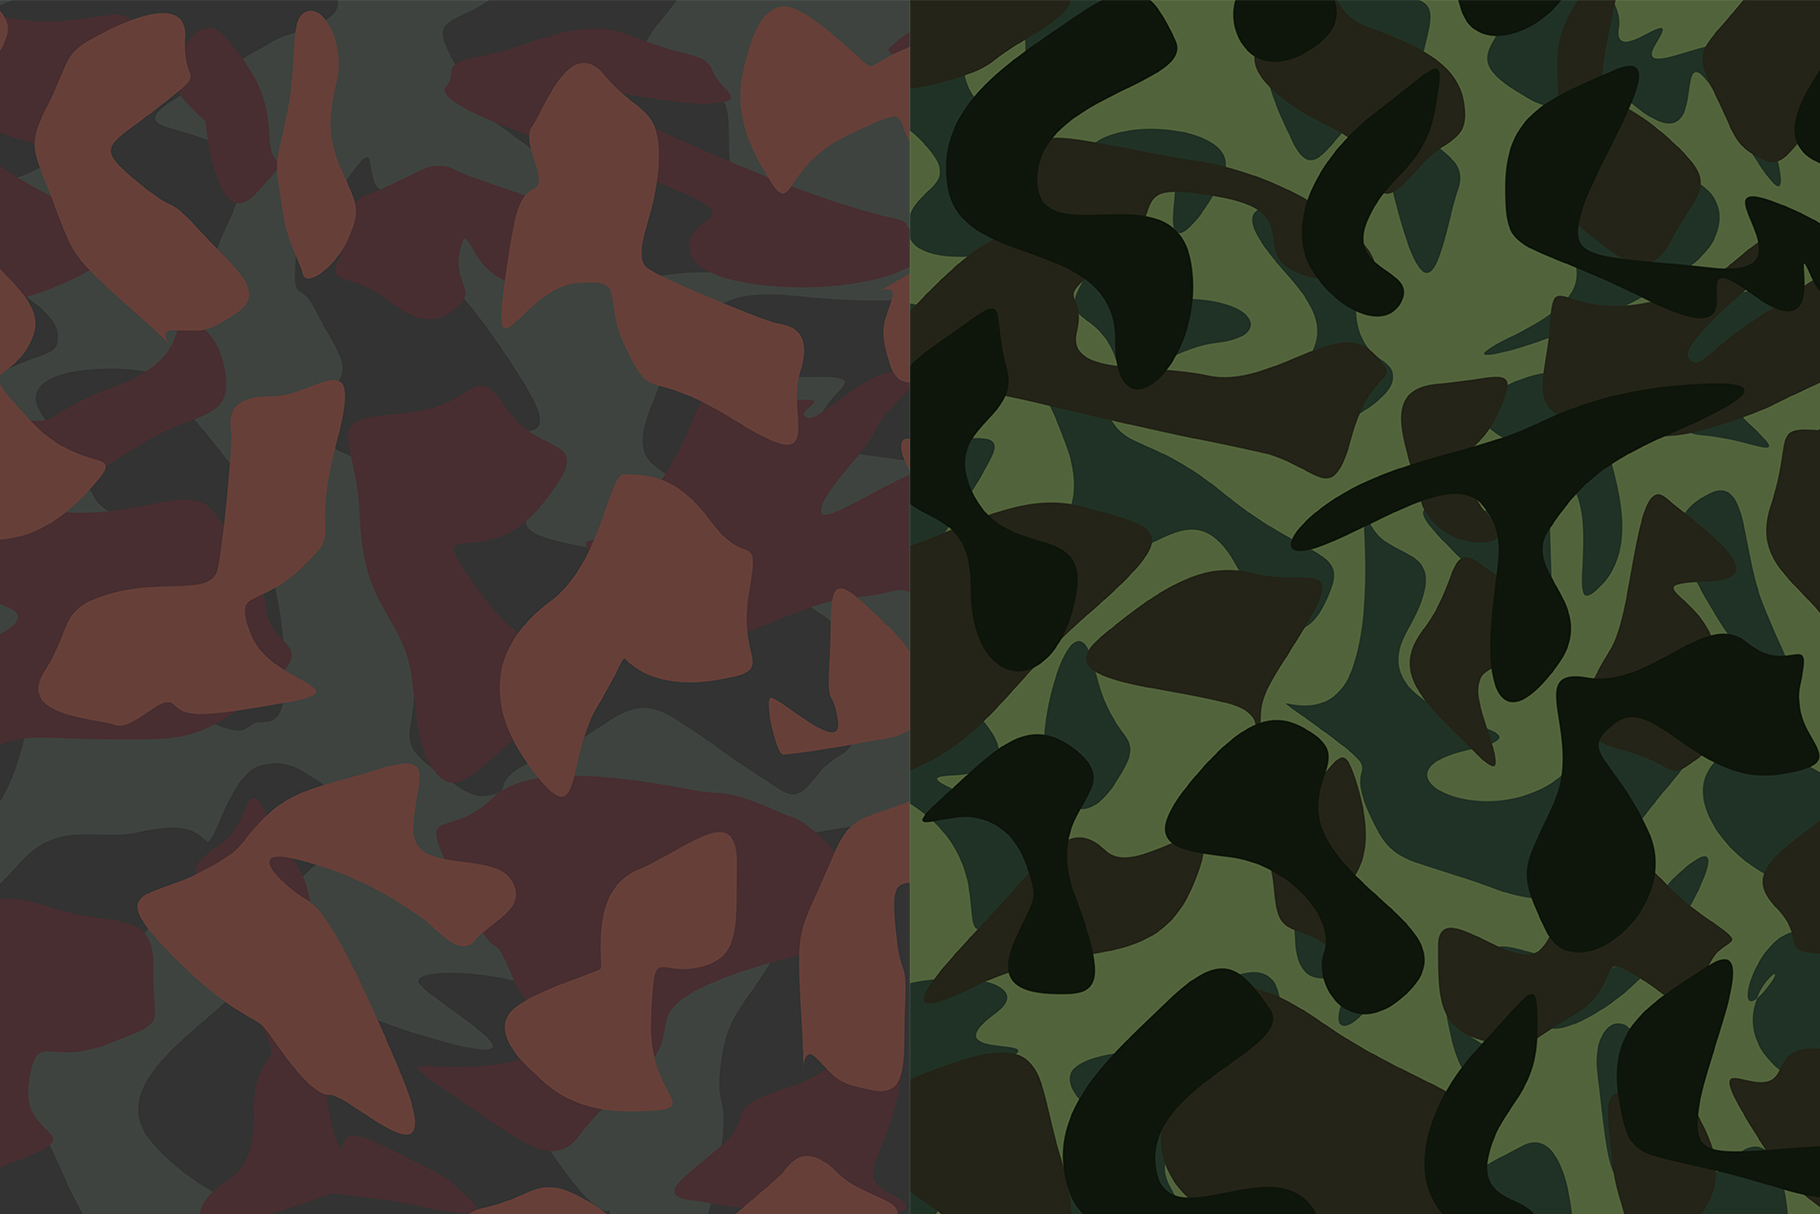 10 Army Camo Patterns Vol.2 example image 7